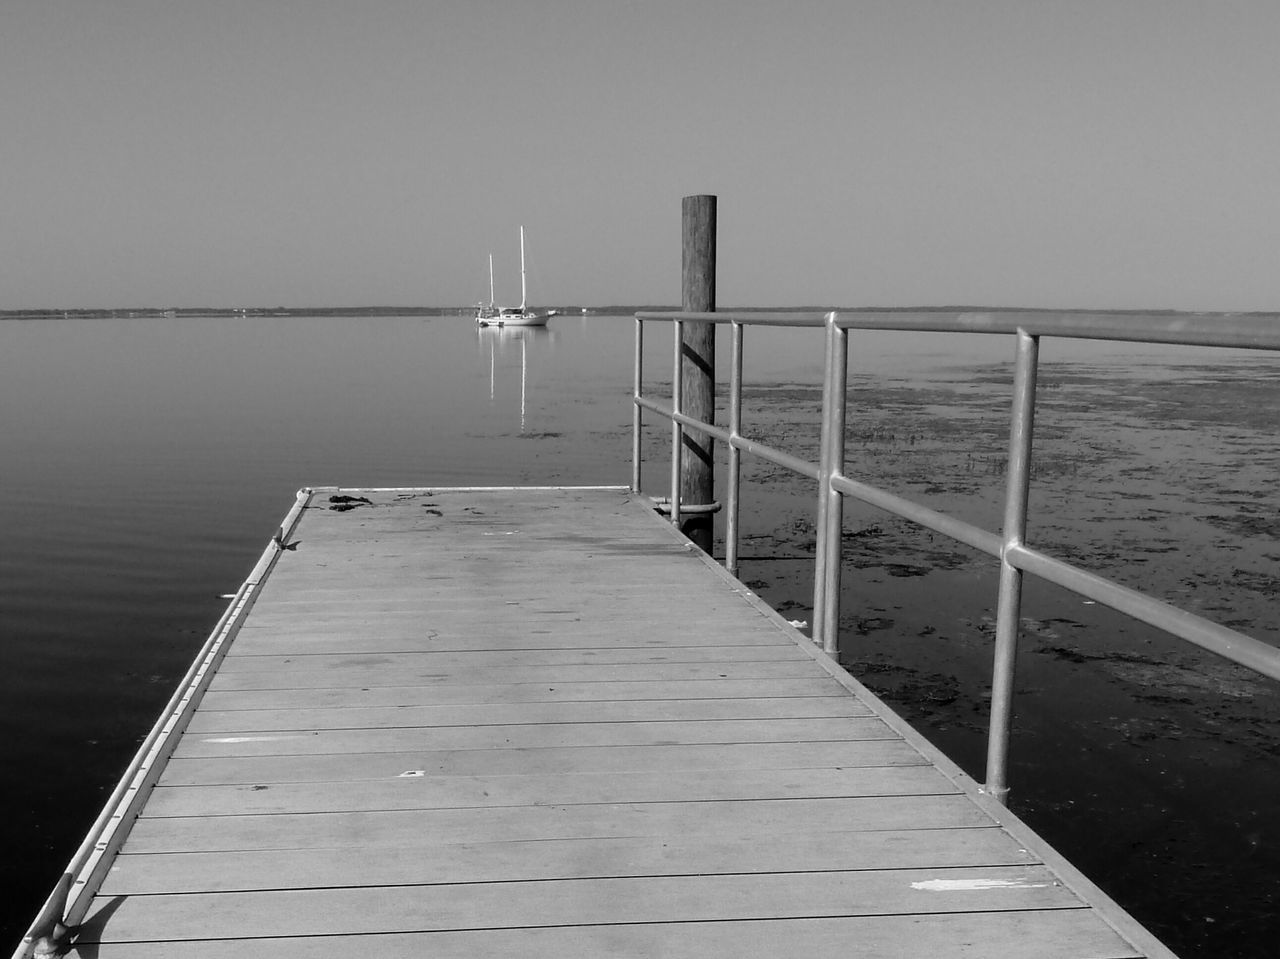 Sailboat Nautical Vessel Boat Dock Water Tree Line Riverside Reflection From A Distance Black And White Photography